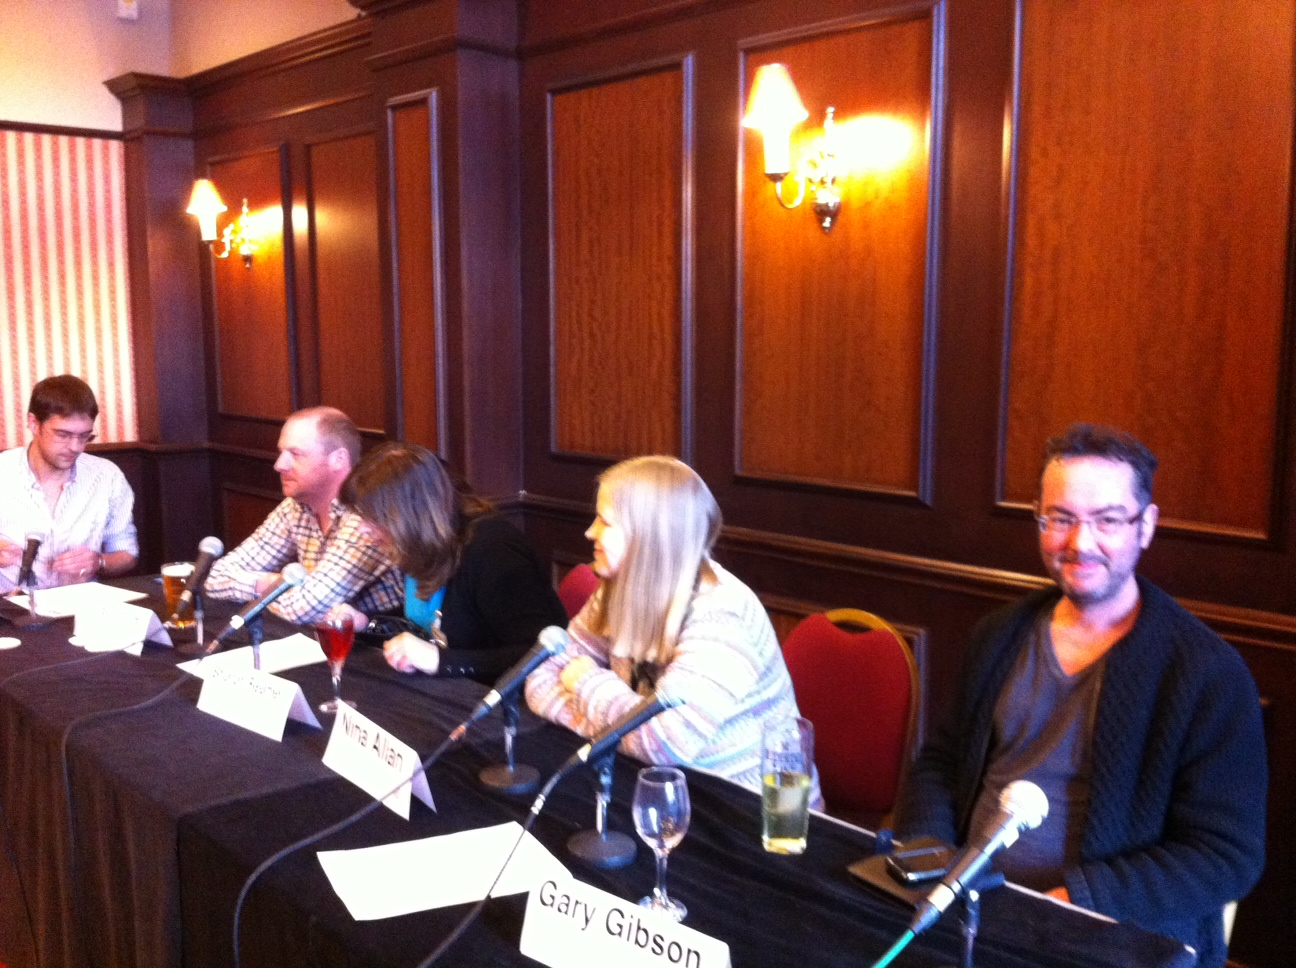 Gary Gibson on Eastercon convention panel (right)